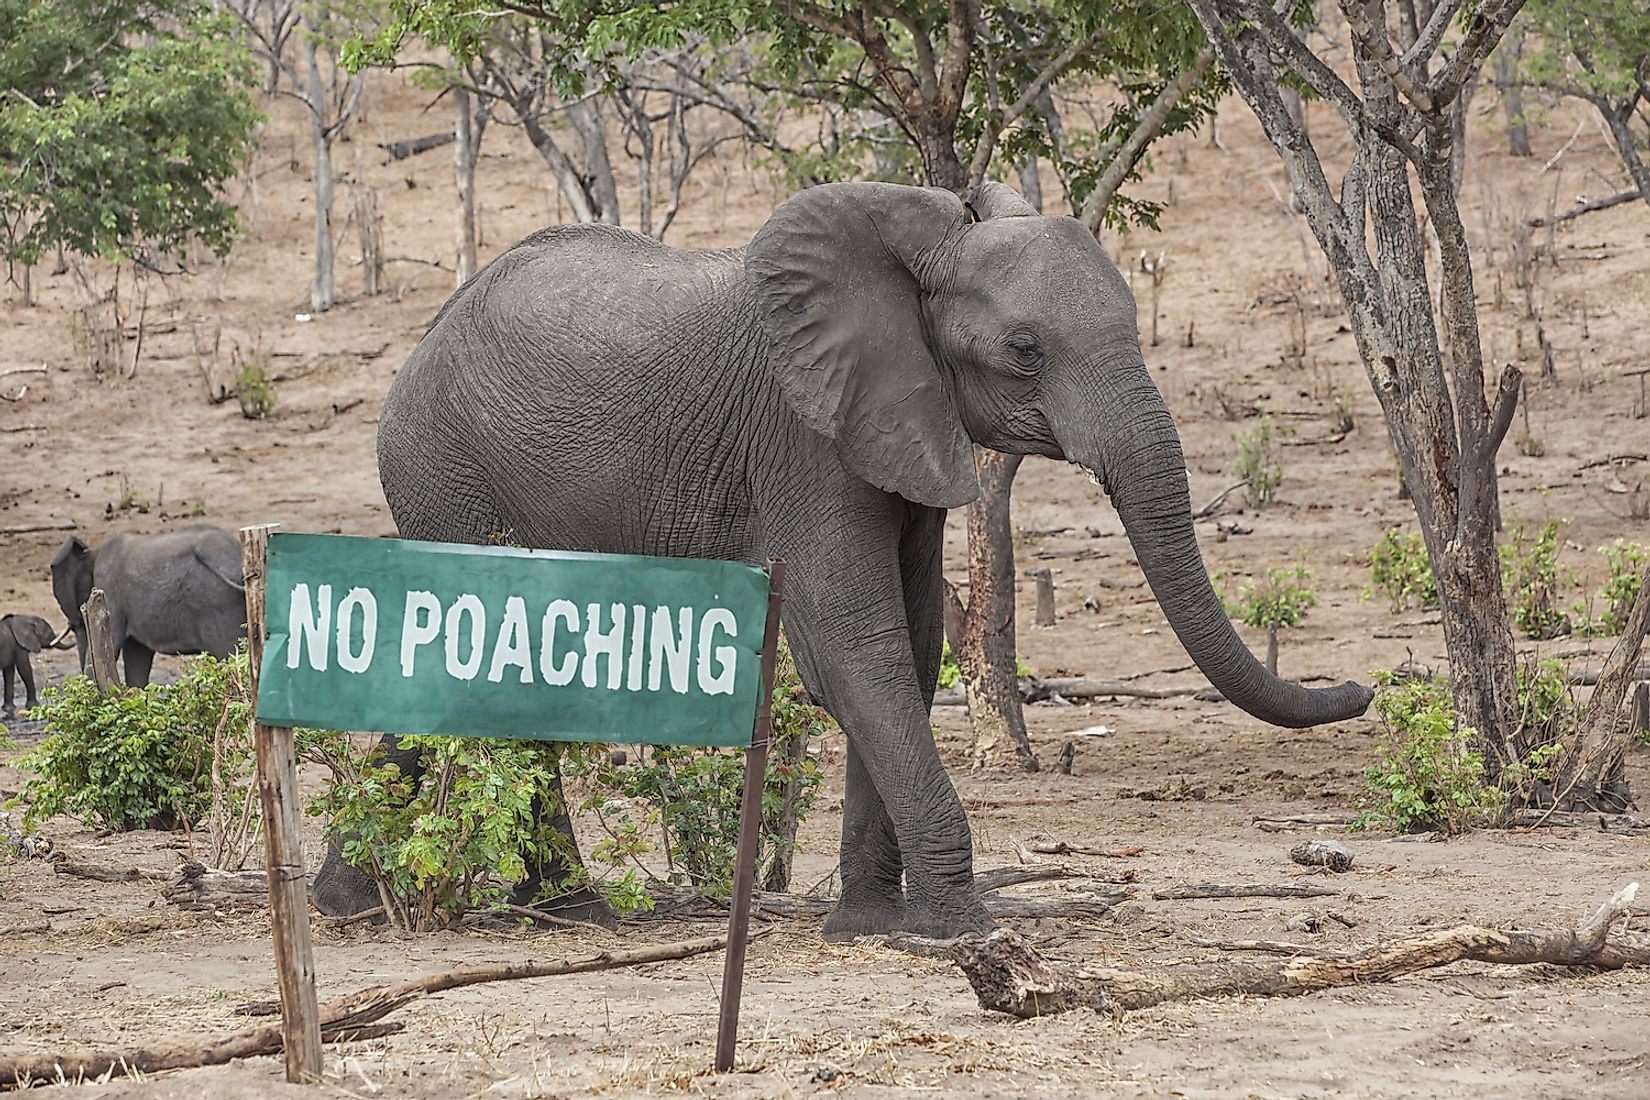 Poaching of wildlife for illegal wildlife trade is one of the biggest threats to the world's wildlife. Image credit:  Michael Wick/Shutterstock.com